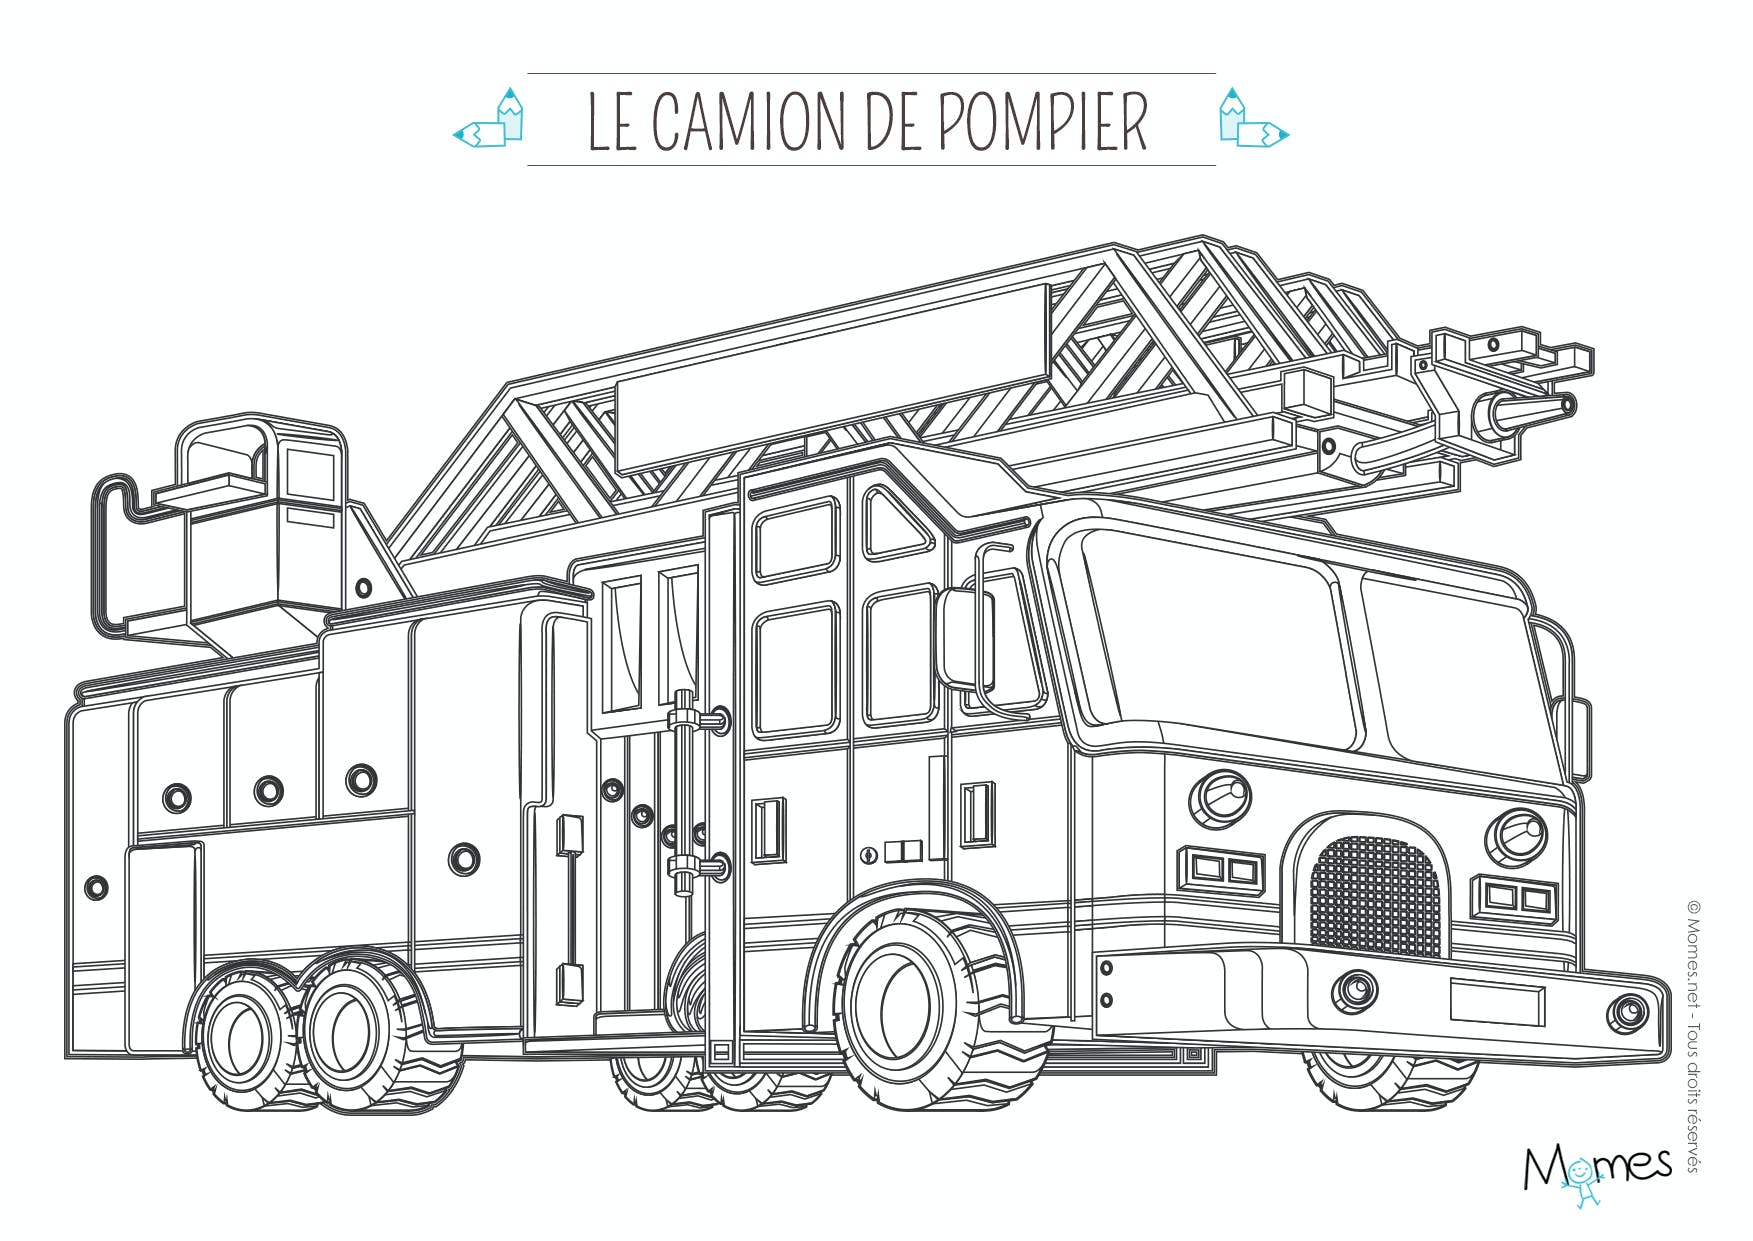 Luxe dessin a imprimer camion americain - Dessin camion americain ...